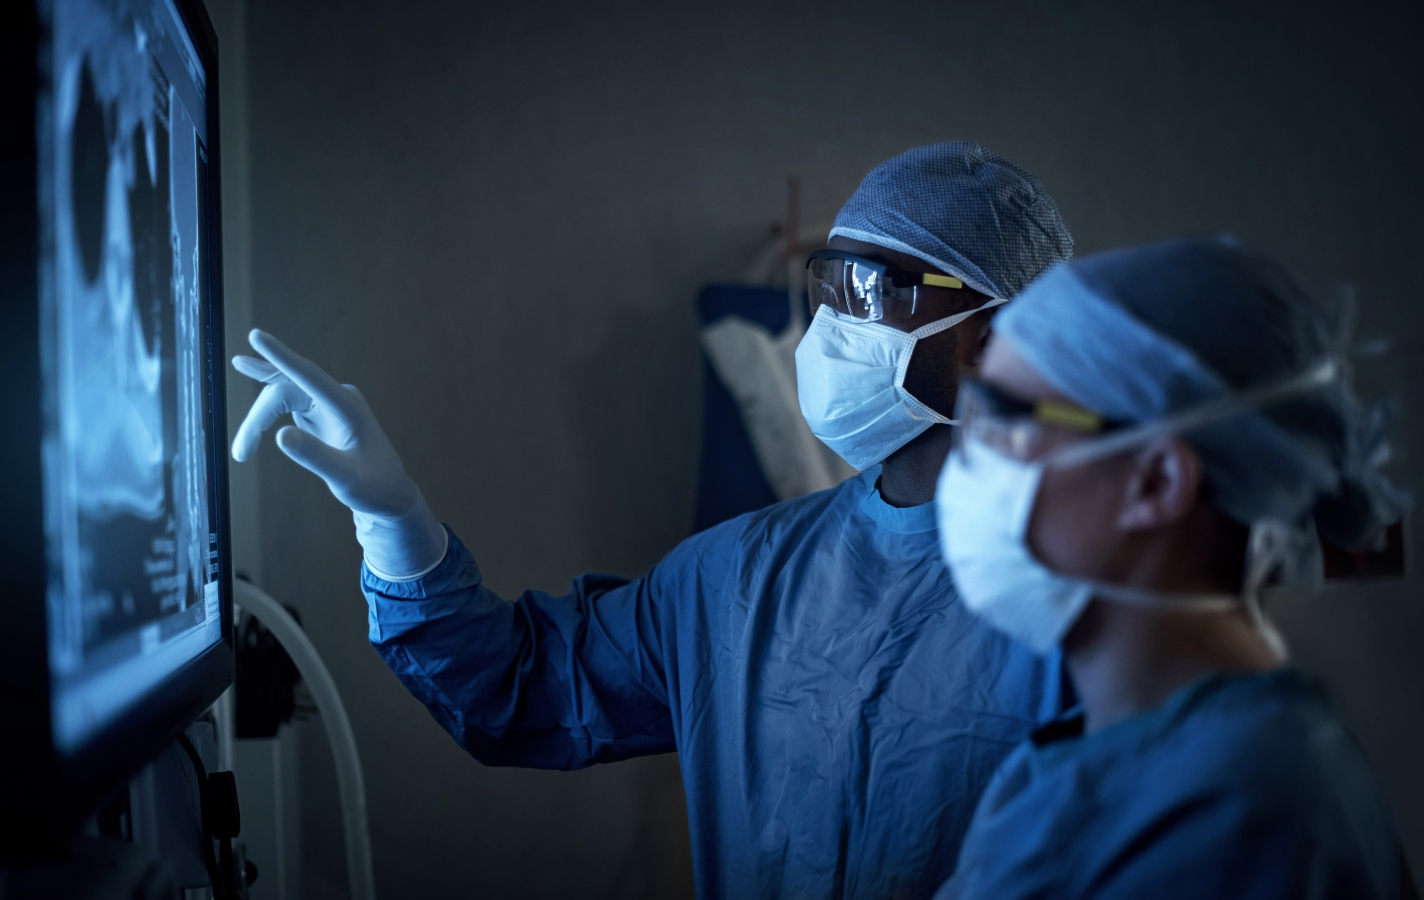 two surgeons analyzing a patient's medical scans during surgery